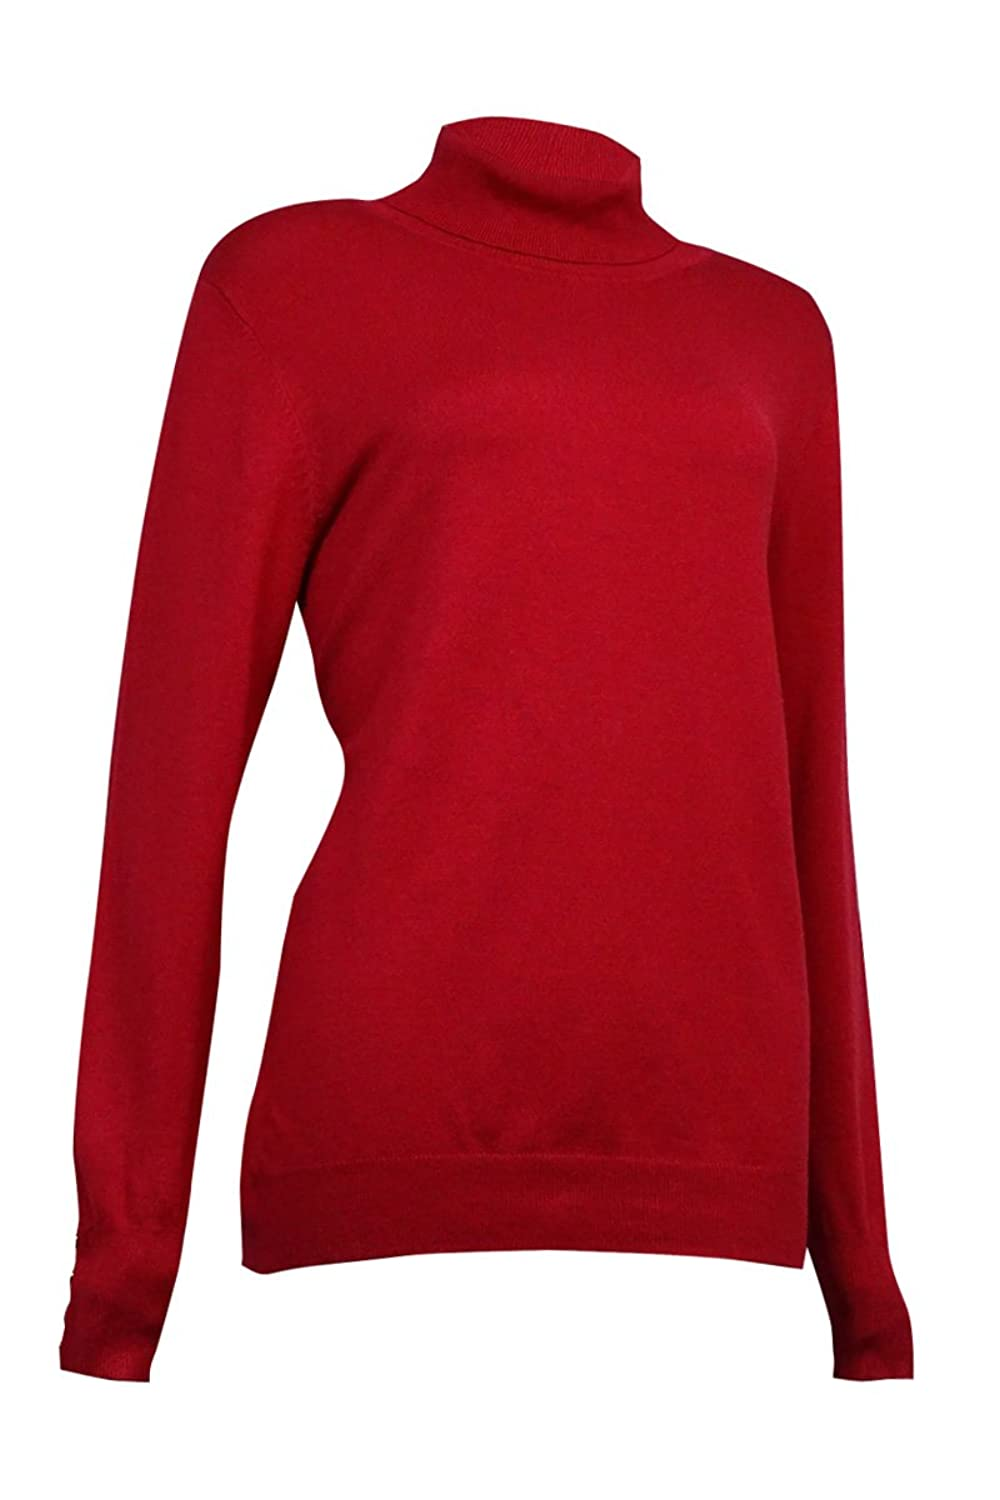 Charter Club Womens Ribbed Knit Turtleneck Pullover Top